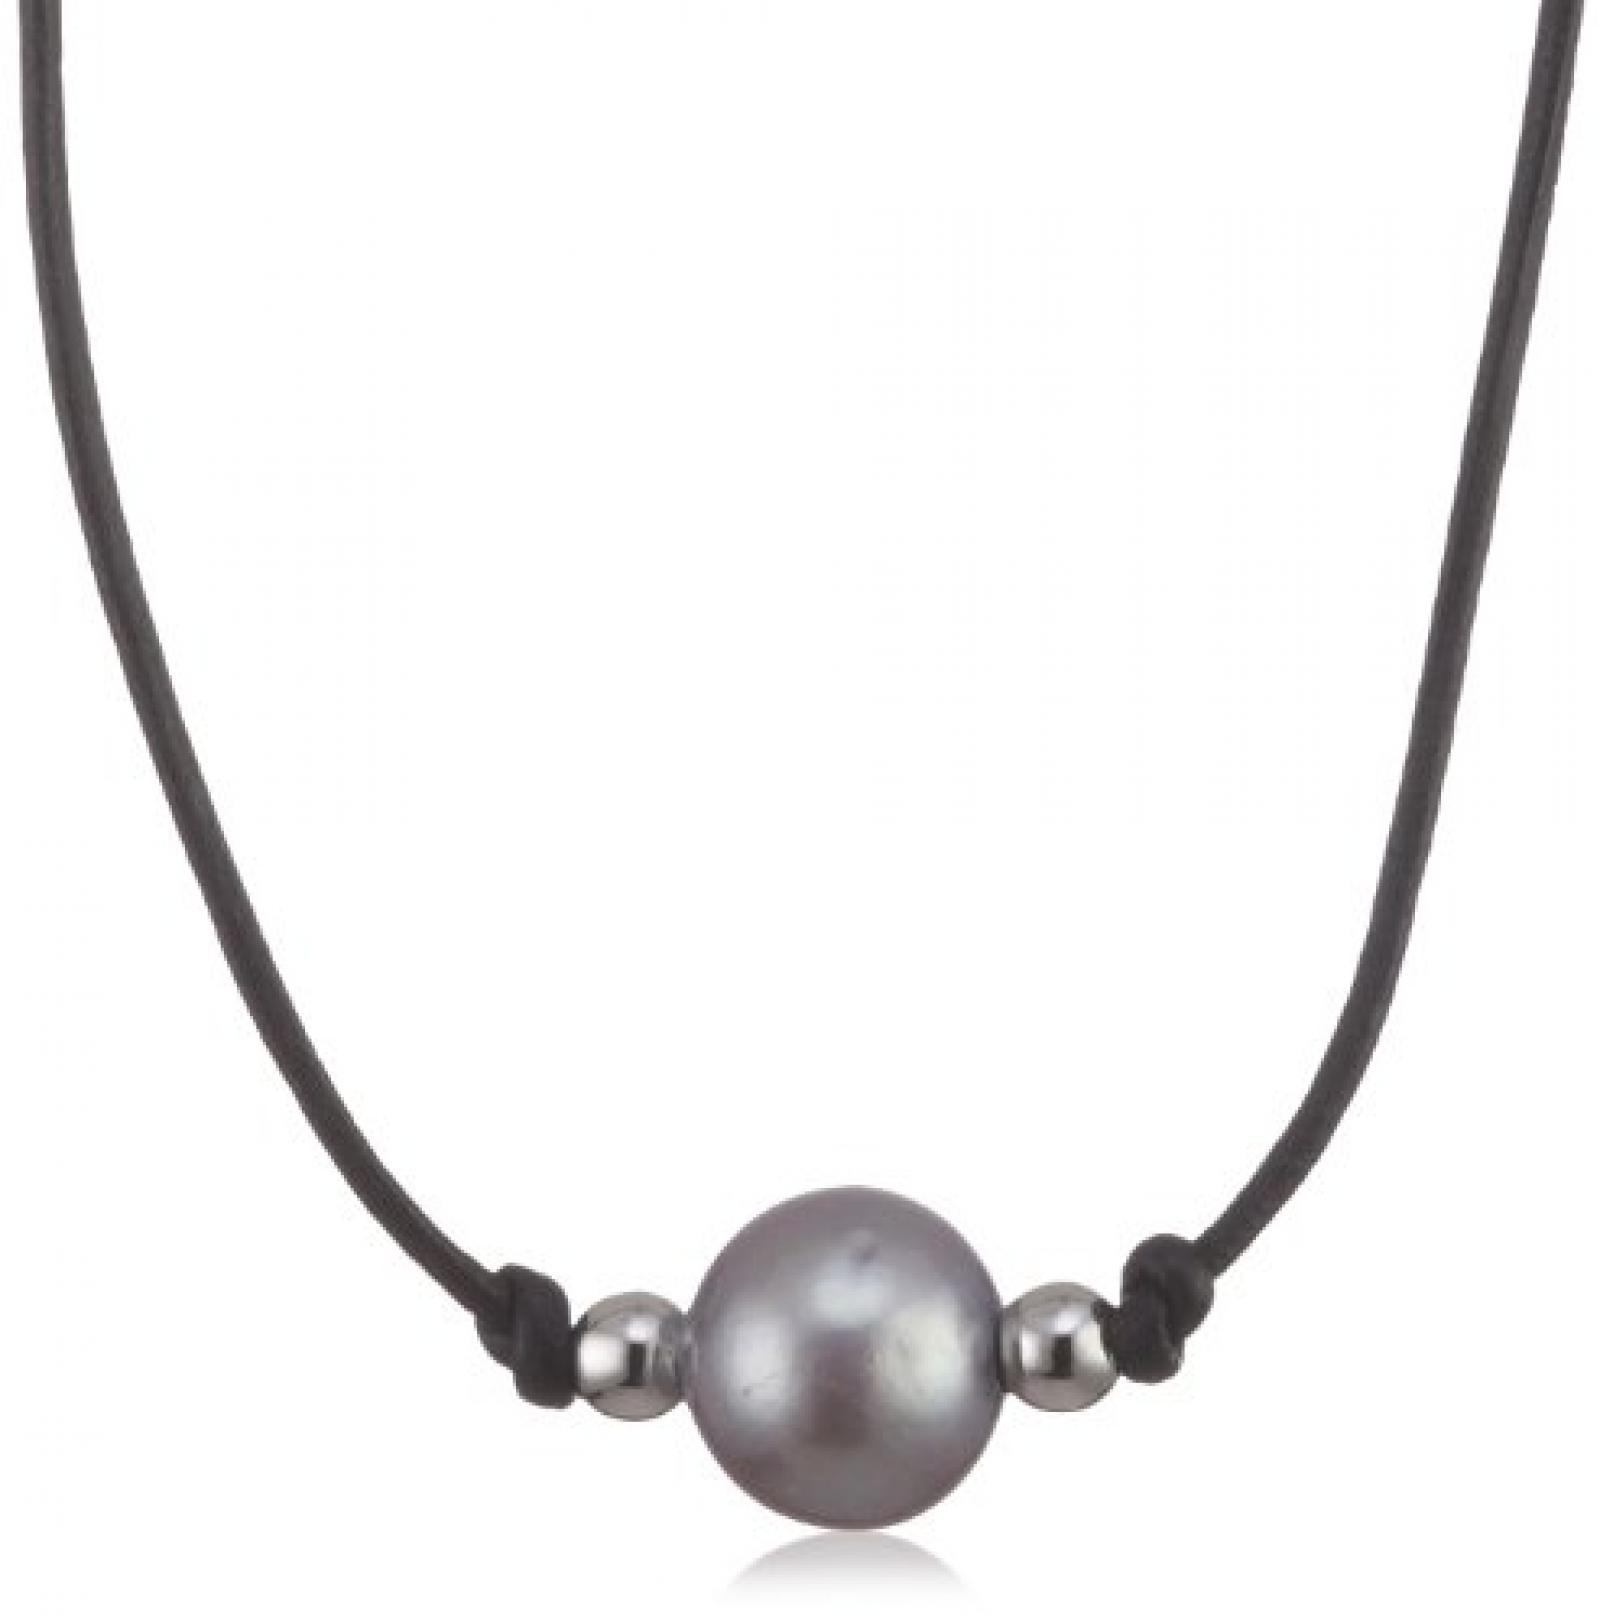 Valero Pearls Fashion Collection Damen-Kette Hochwertige Süßwasser-Zuchtperlen in ca.  10 mm Rund grau 925 Sterling Silber Leder schwarz  90 cm   60200913